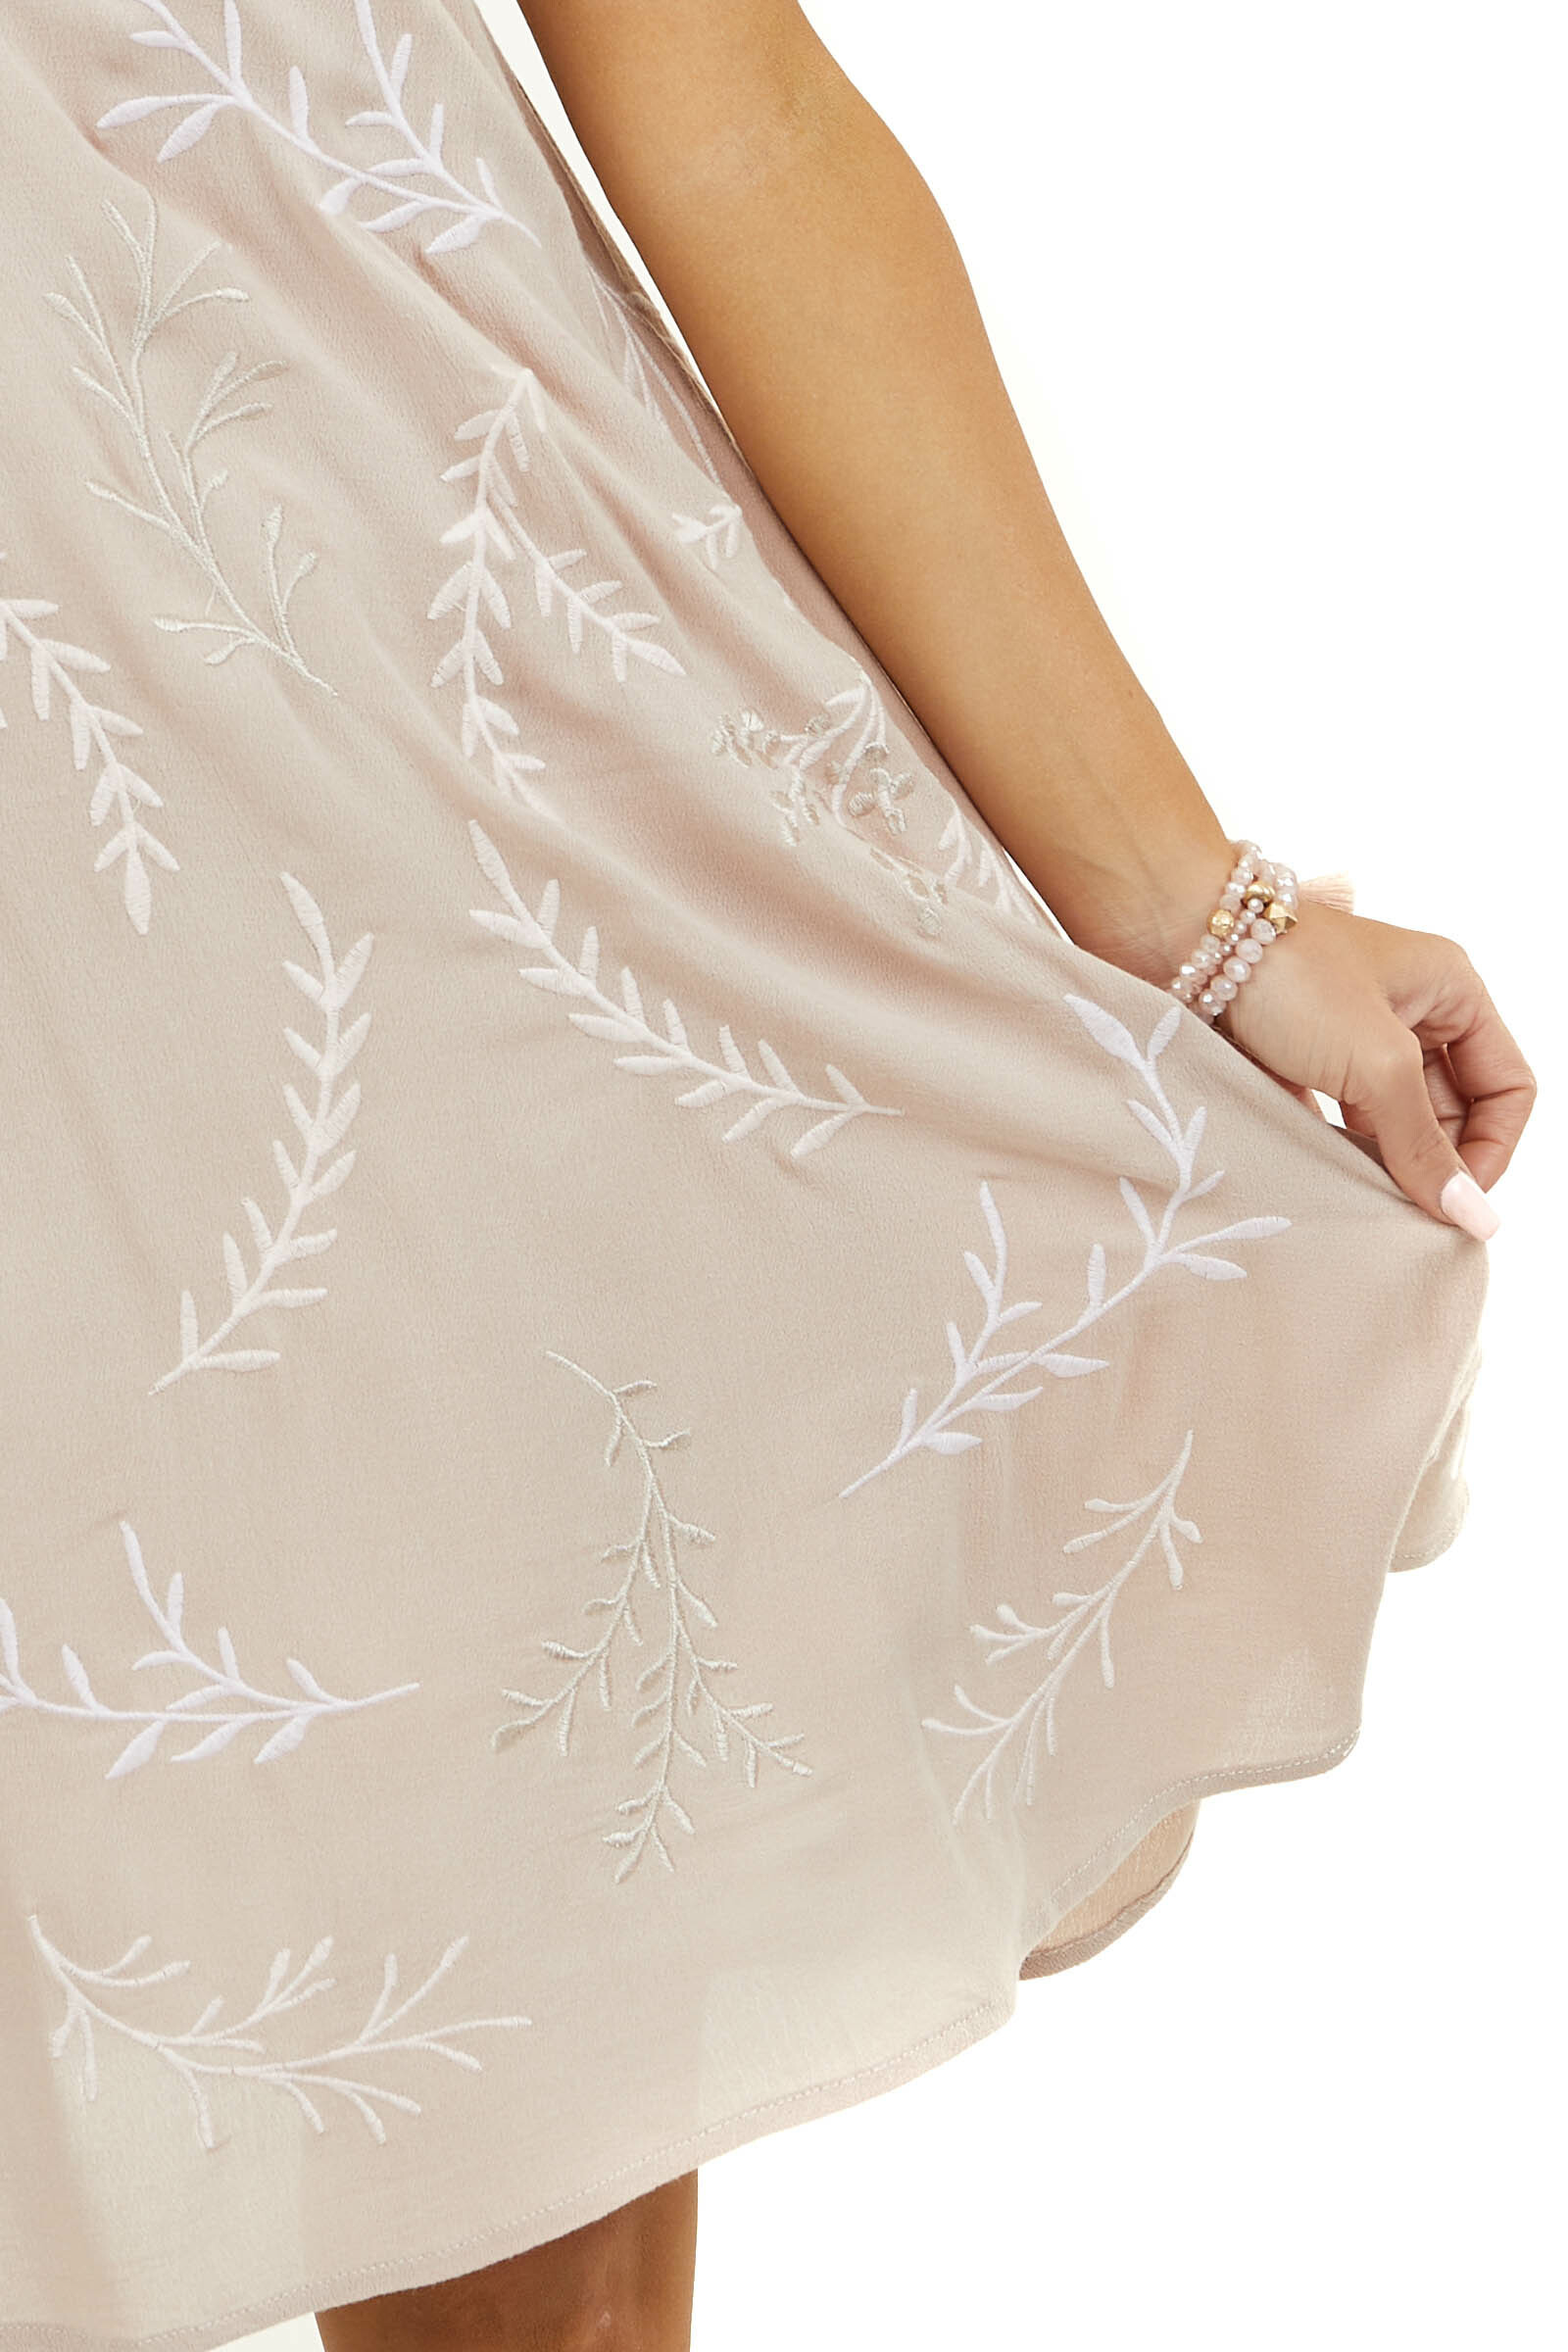 Latte Embroidered Sleeveless Dress with Spaghetti Straps